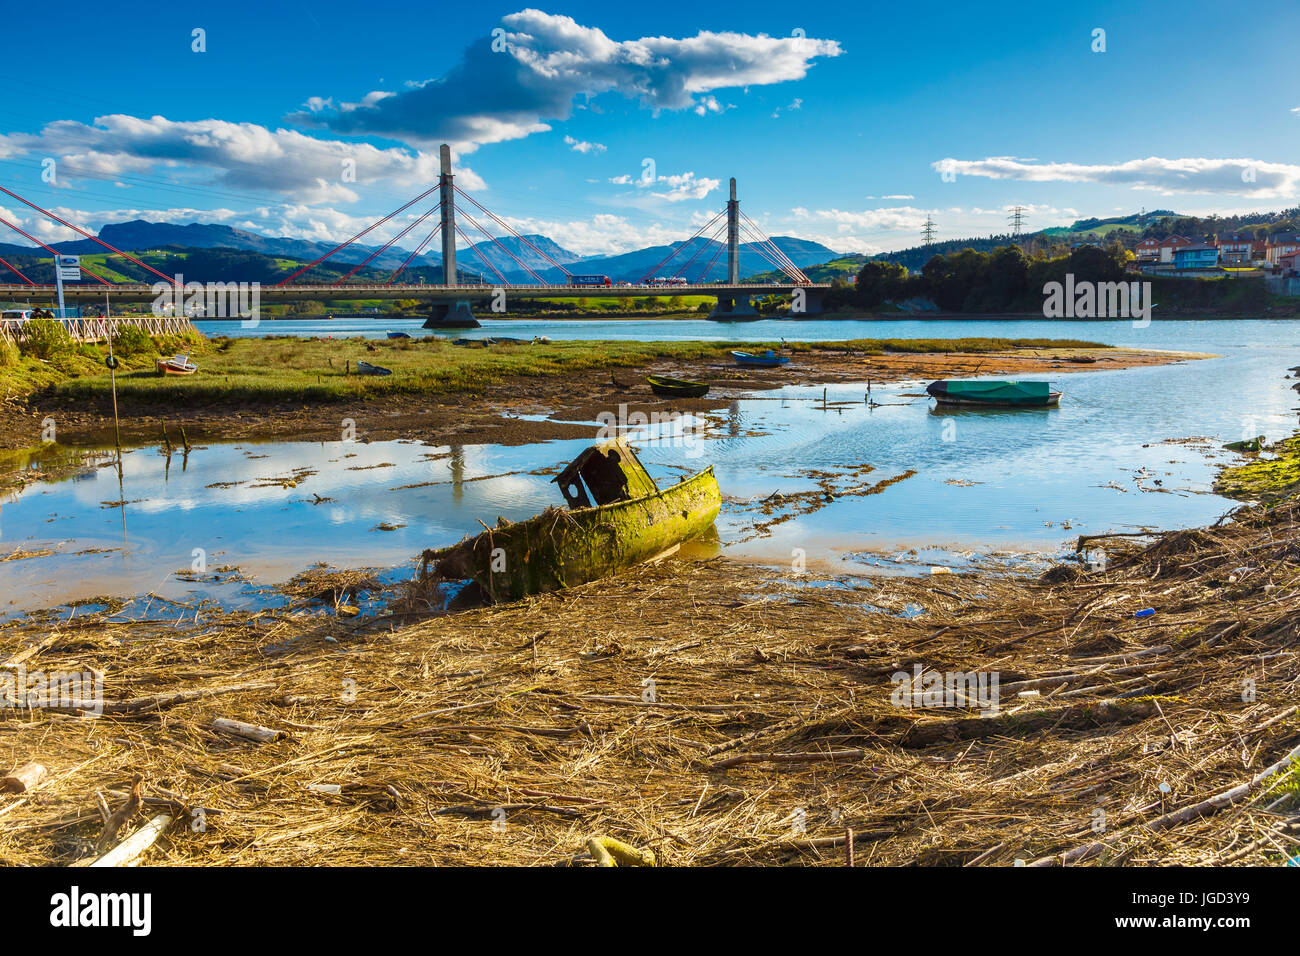 Old boat, bridge and tidal remains. - Stock Image